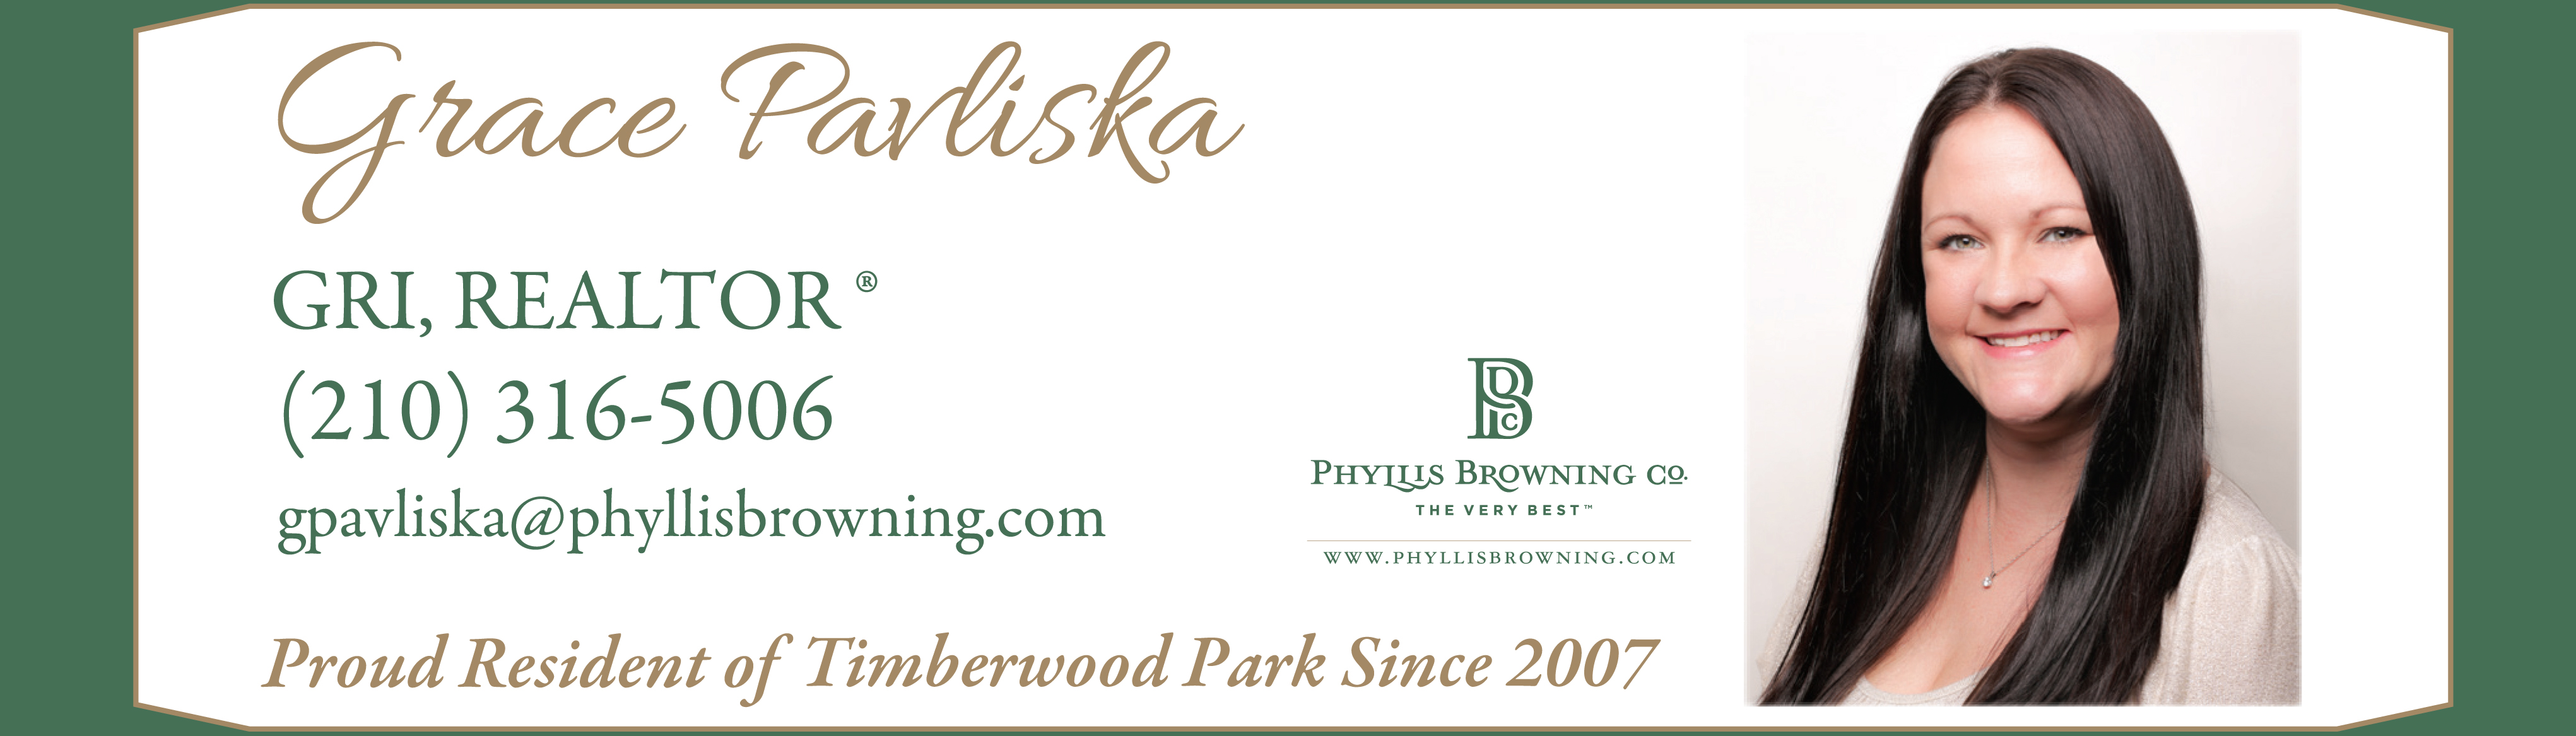 http://www.neighborhoodnews.com/wp-content/uploads/2016/09/Phyllis-Browning-Pavliska_Oct16_Web-Banner.jpg